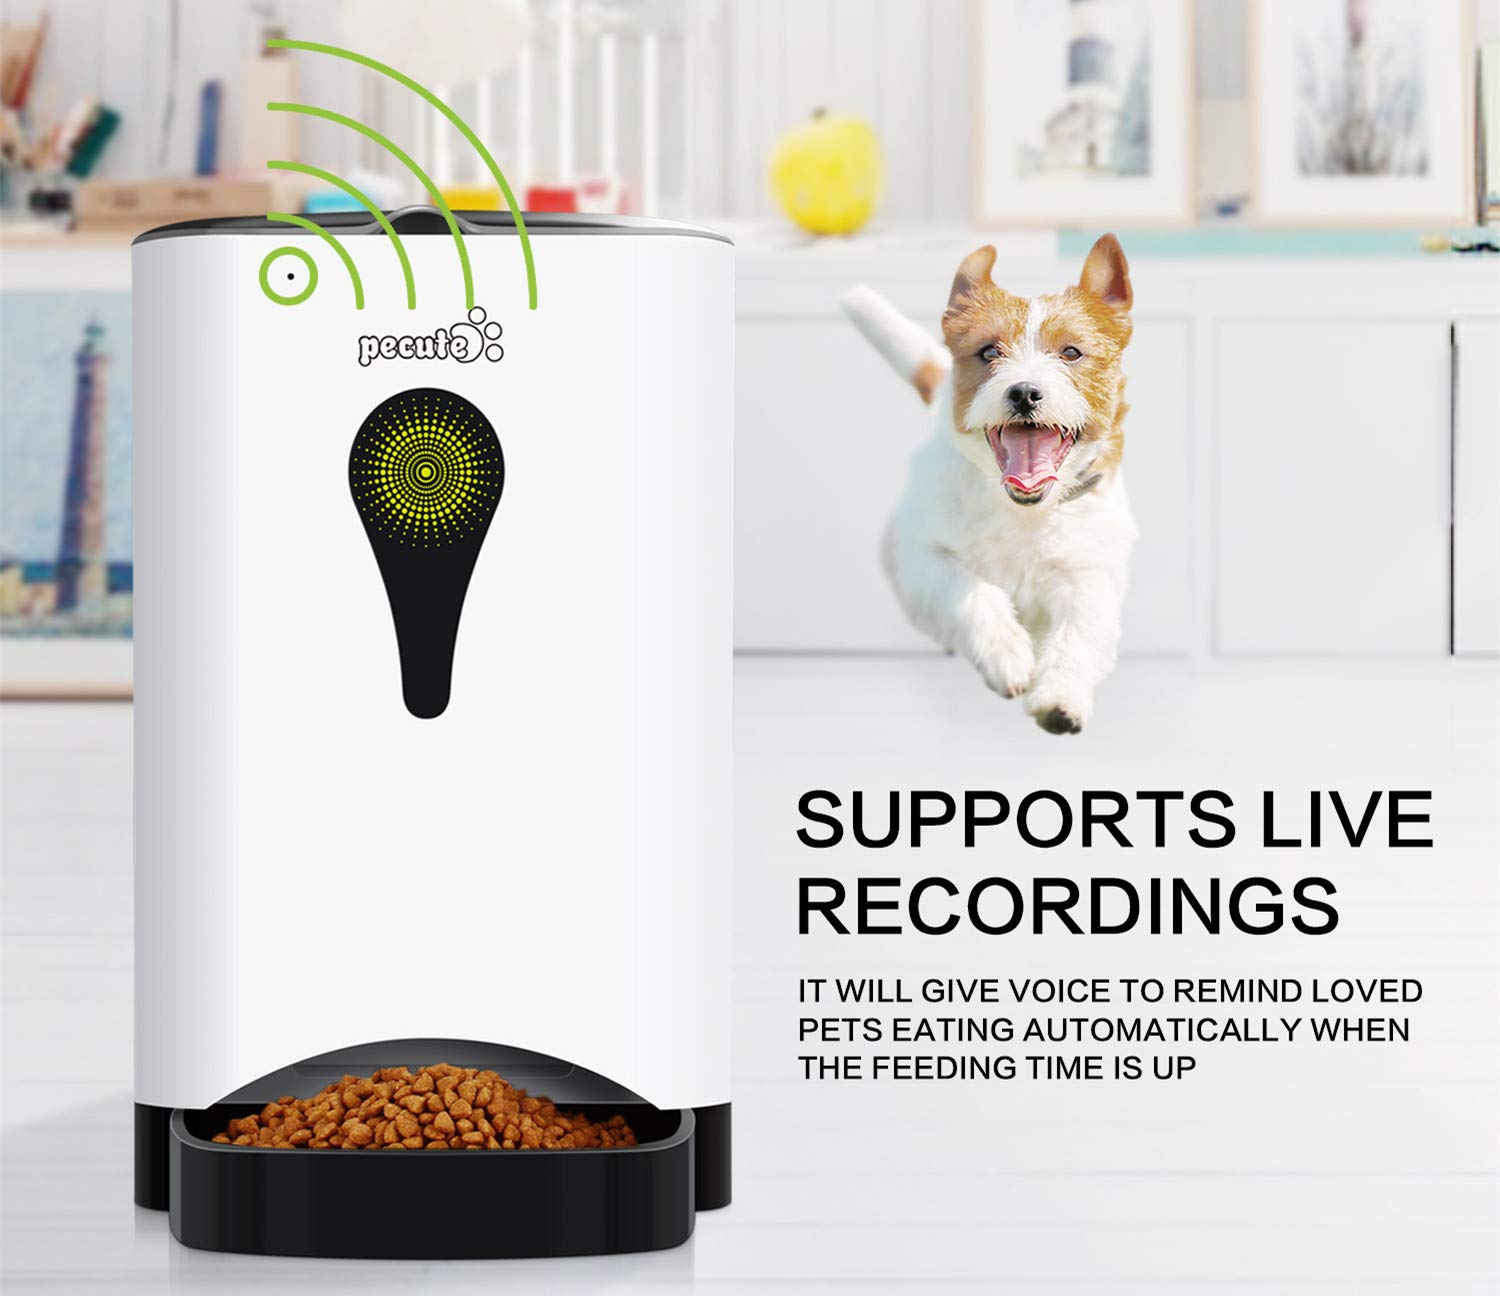 Pecute Automatic Pet Feeder 4.5L Food Dispenser for Dogs,Cats & Small Animals -Portion Control & Voice Recording,Timer Programmable Up to 9 Meals a Day